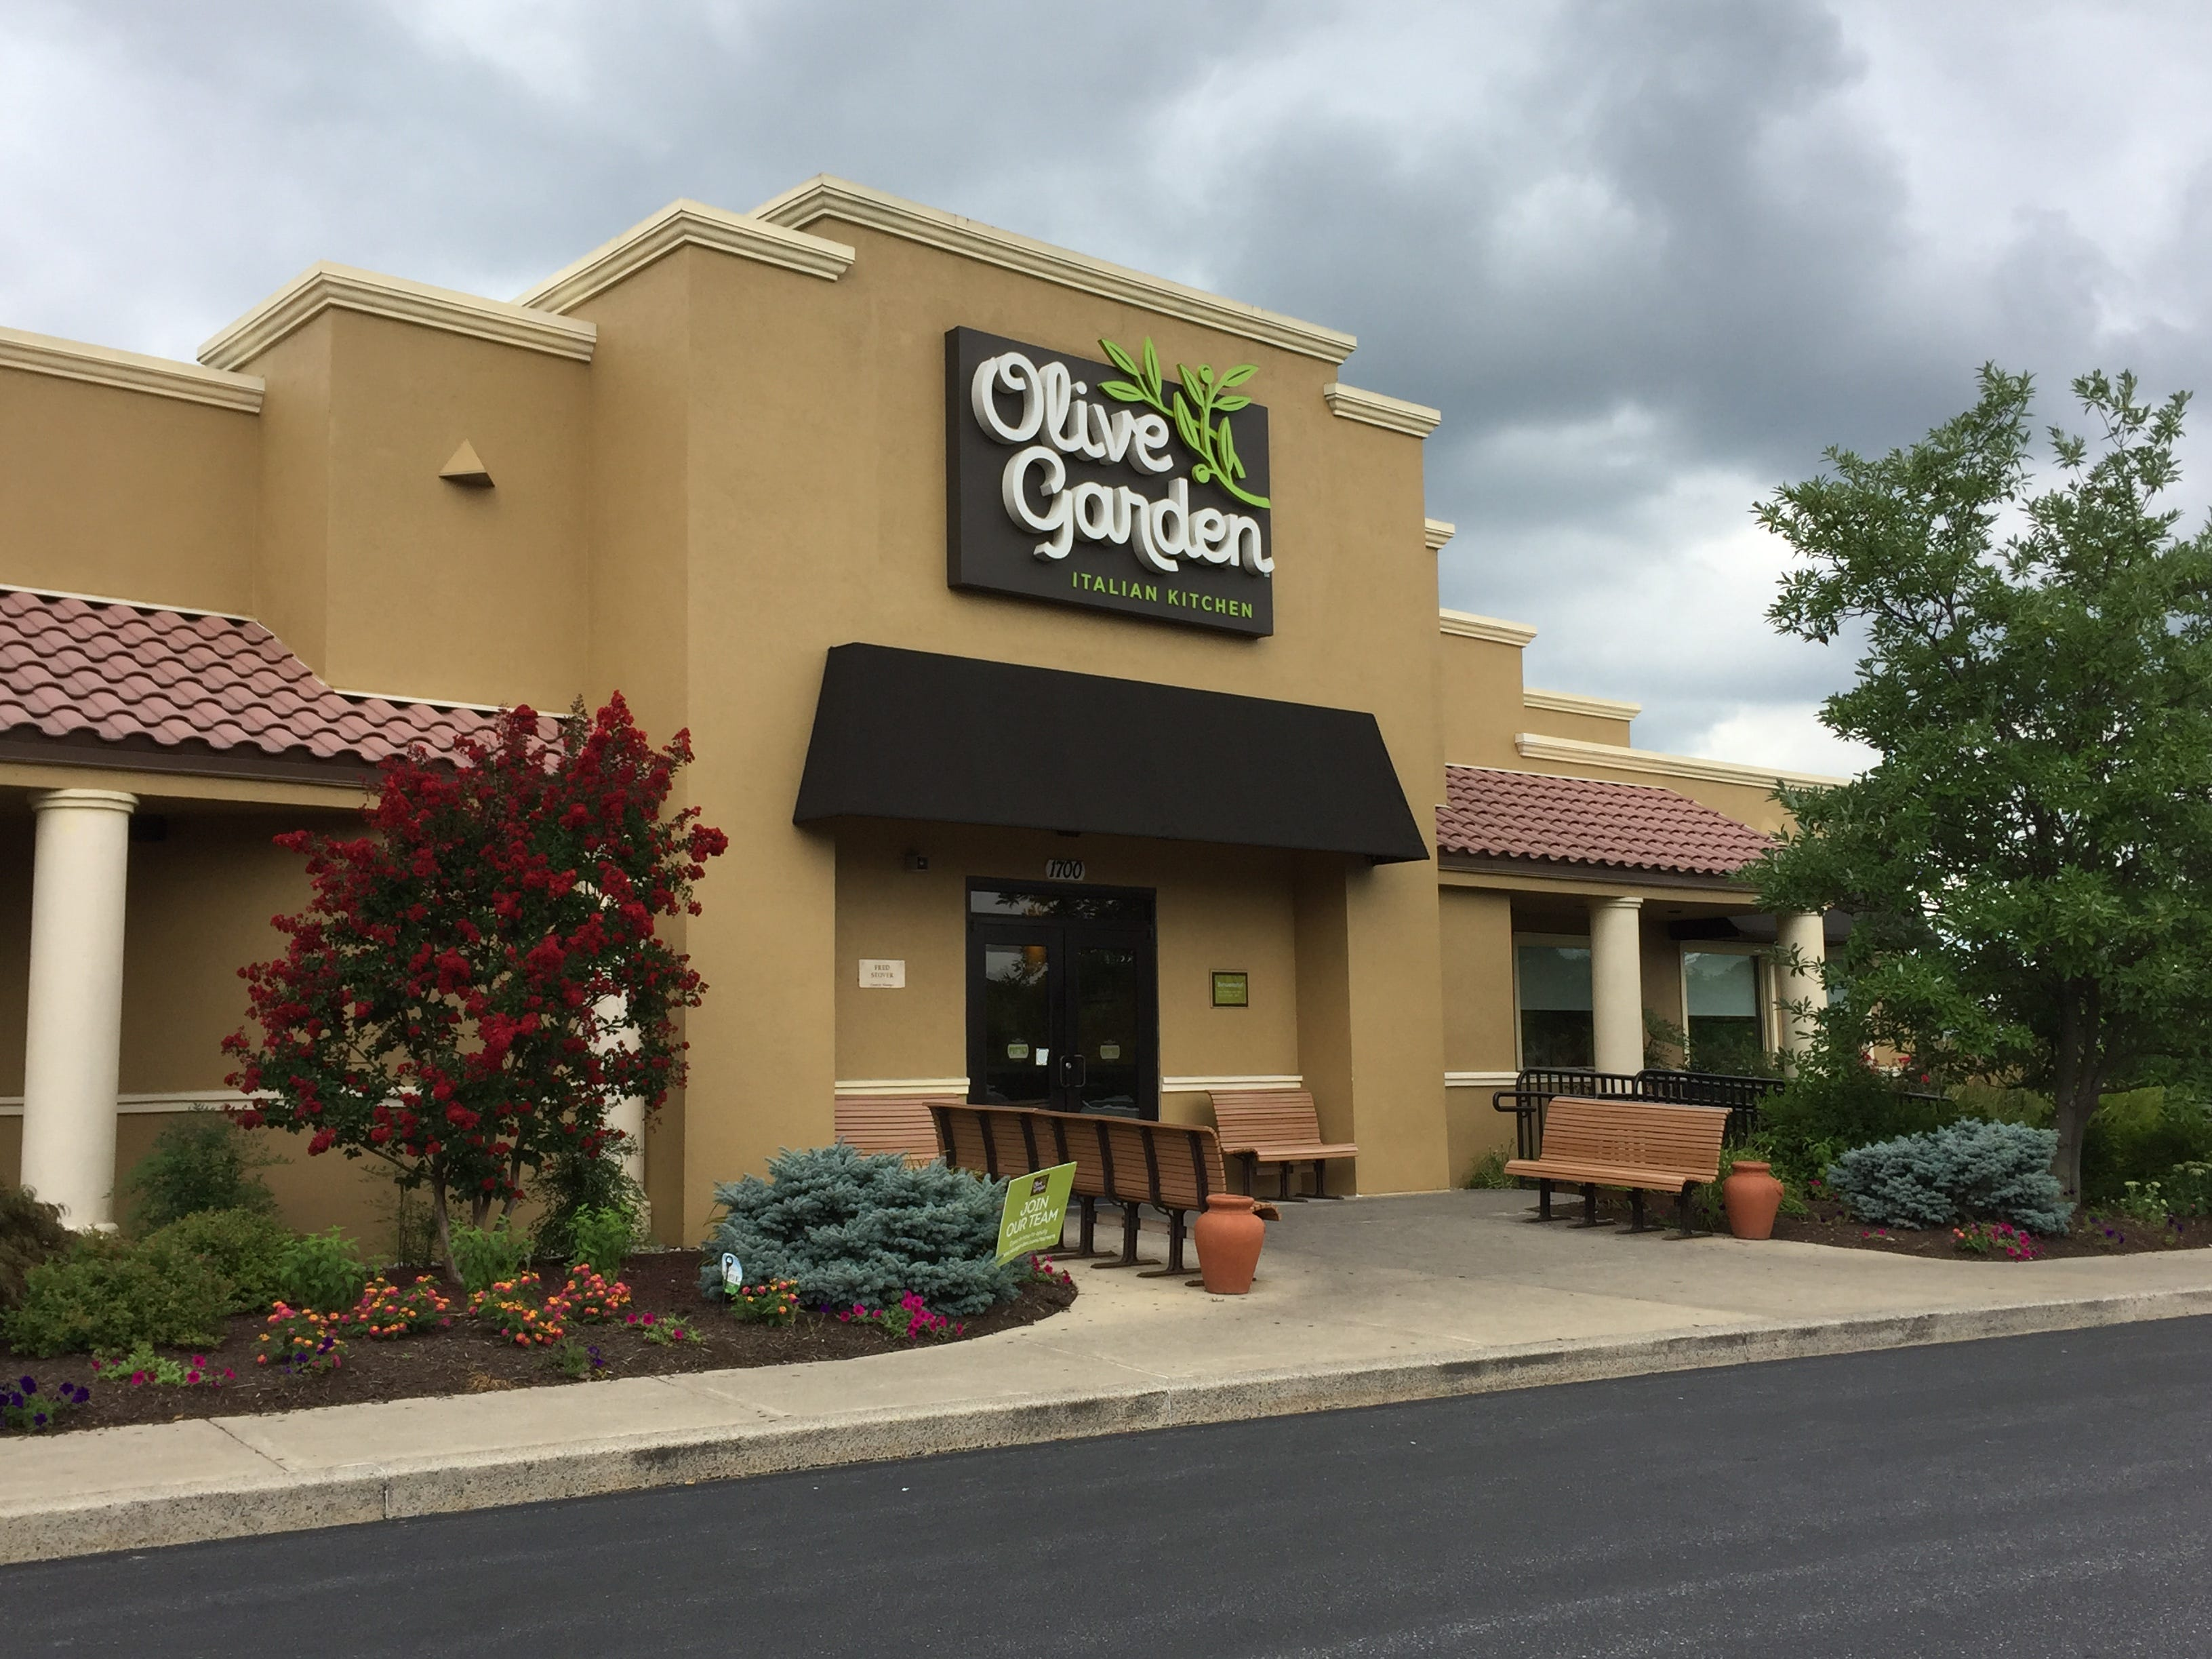 Olive Garden  There are numerous excellent restaurants serving Italian cuisine throughout Lebanon County. Still, some diners prefer the familiarity of an Olive Garden. Even for haters who claim to have more sophisticated palates, you can't really go wrong with never-ending soup or salad and breadsticks front lunch.